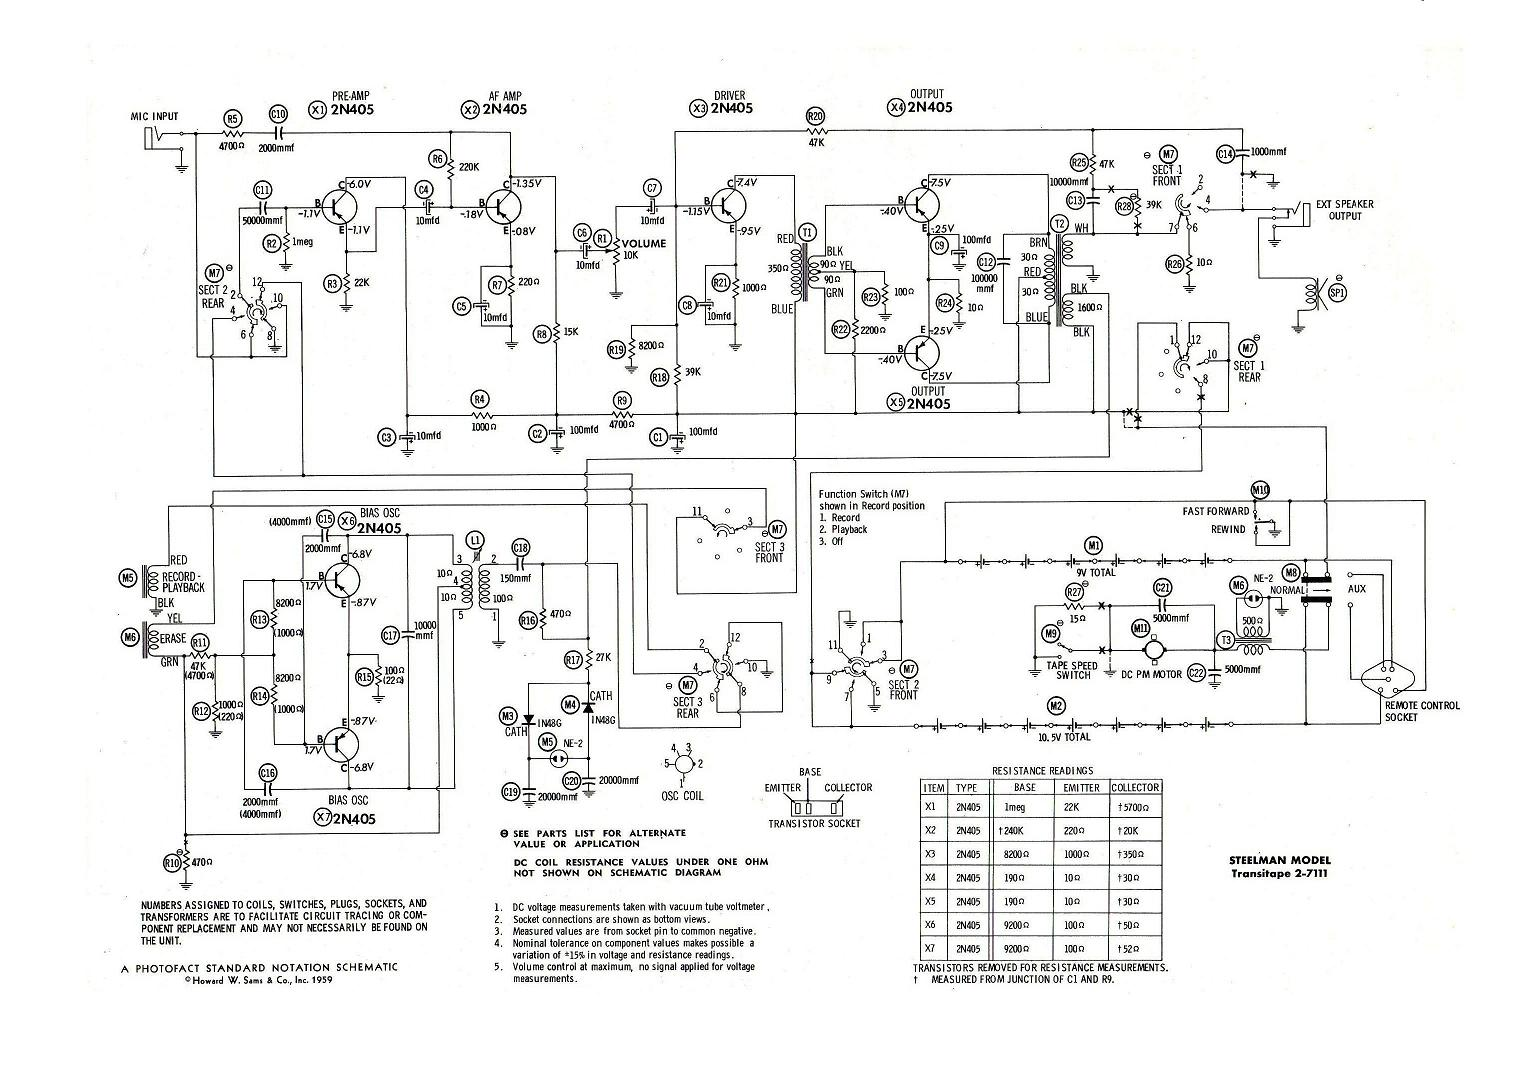 dictator wiring diagram wiring diagram and hernes dictator 60 2 wiring diagram schematics and diagrams